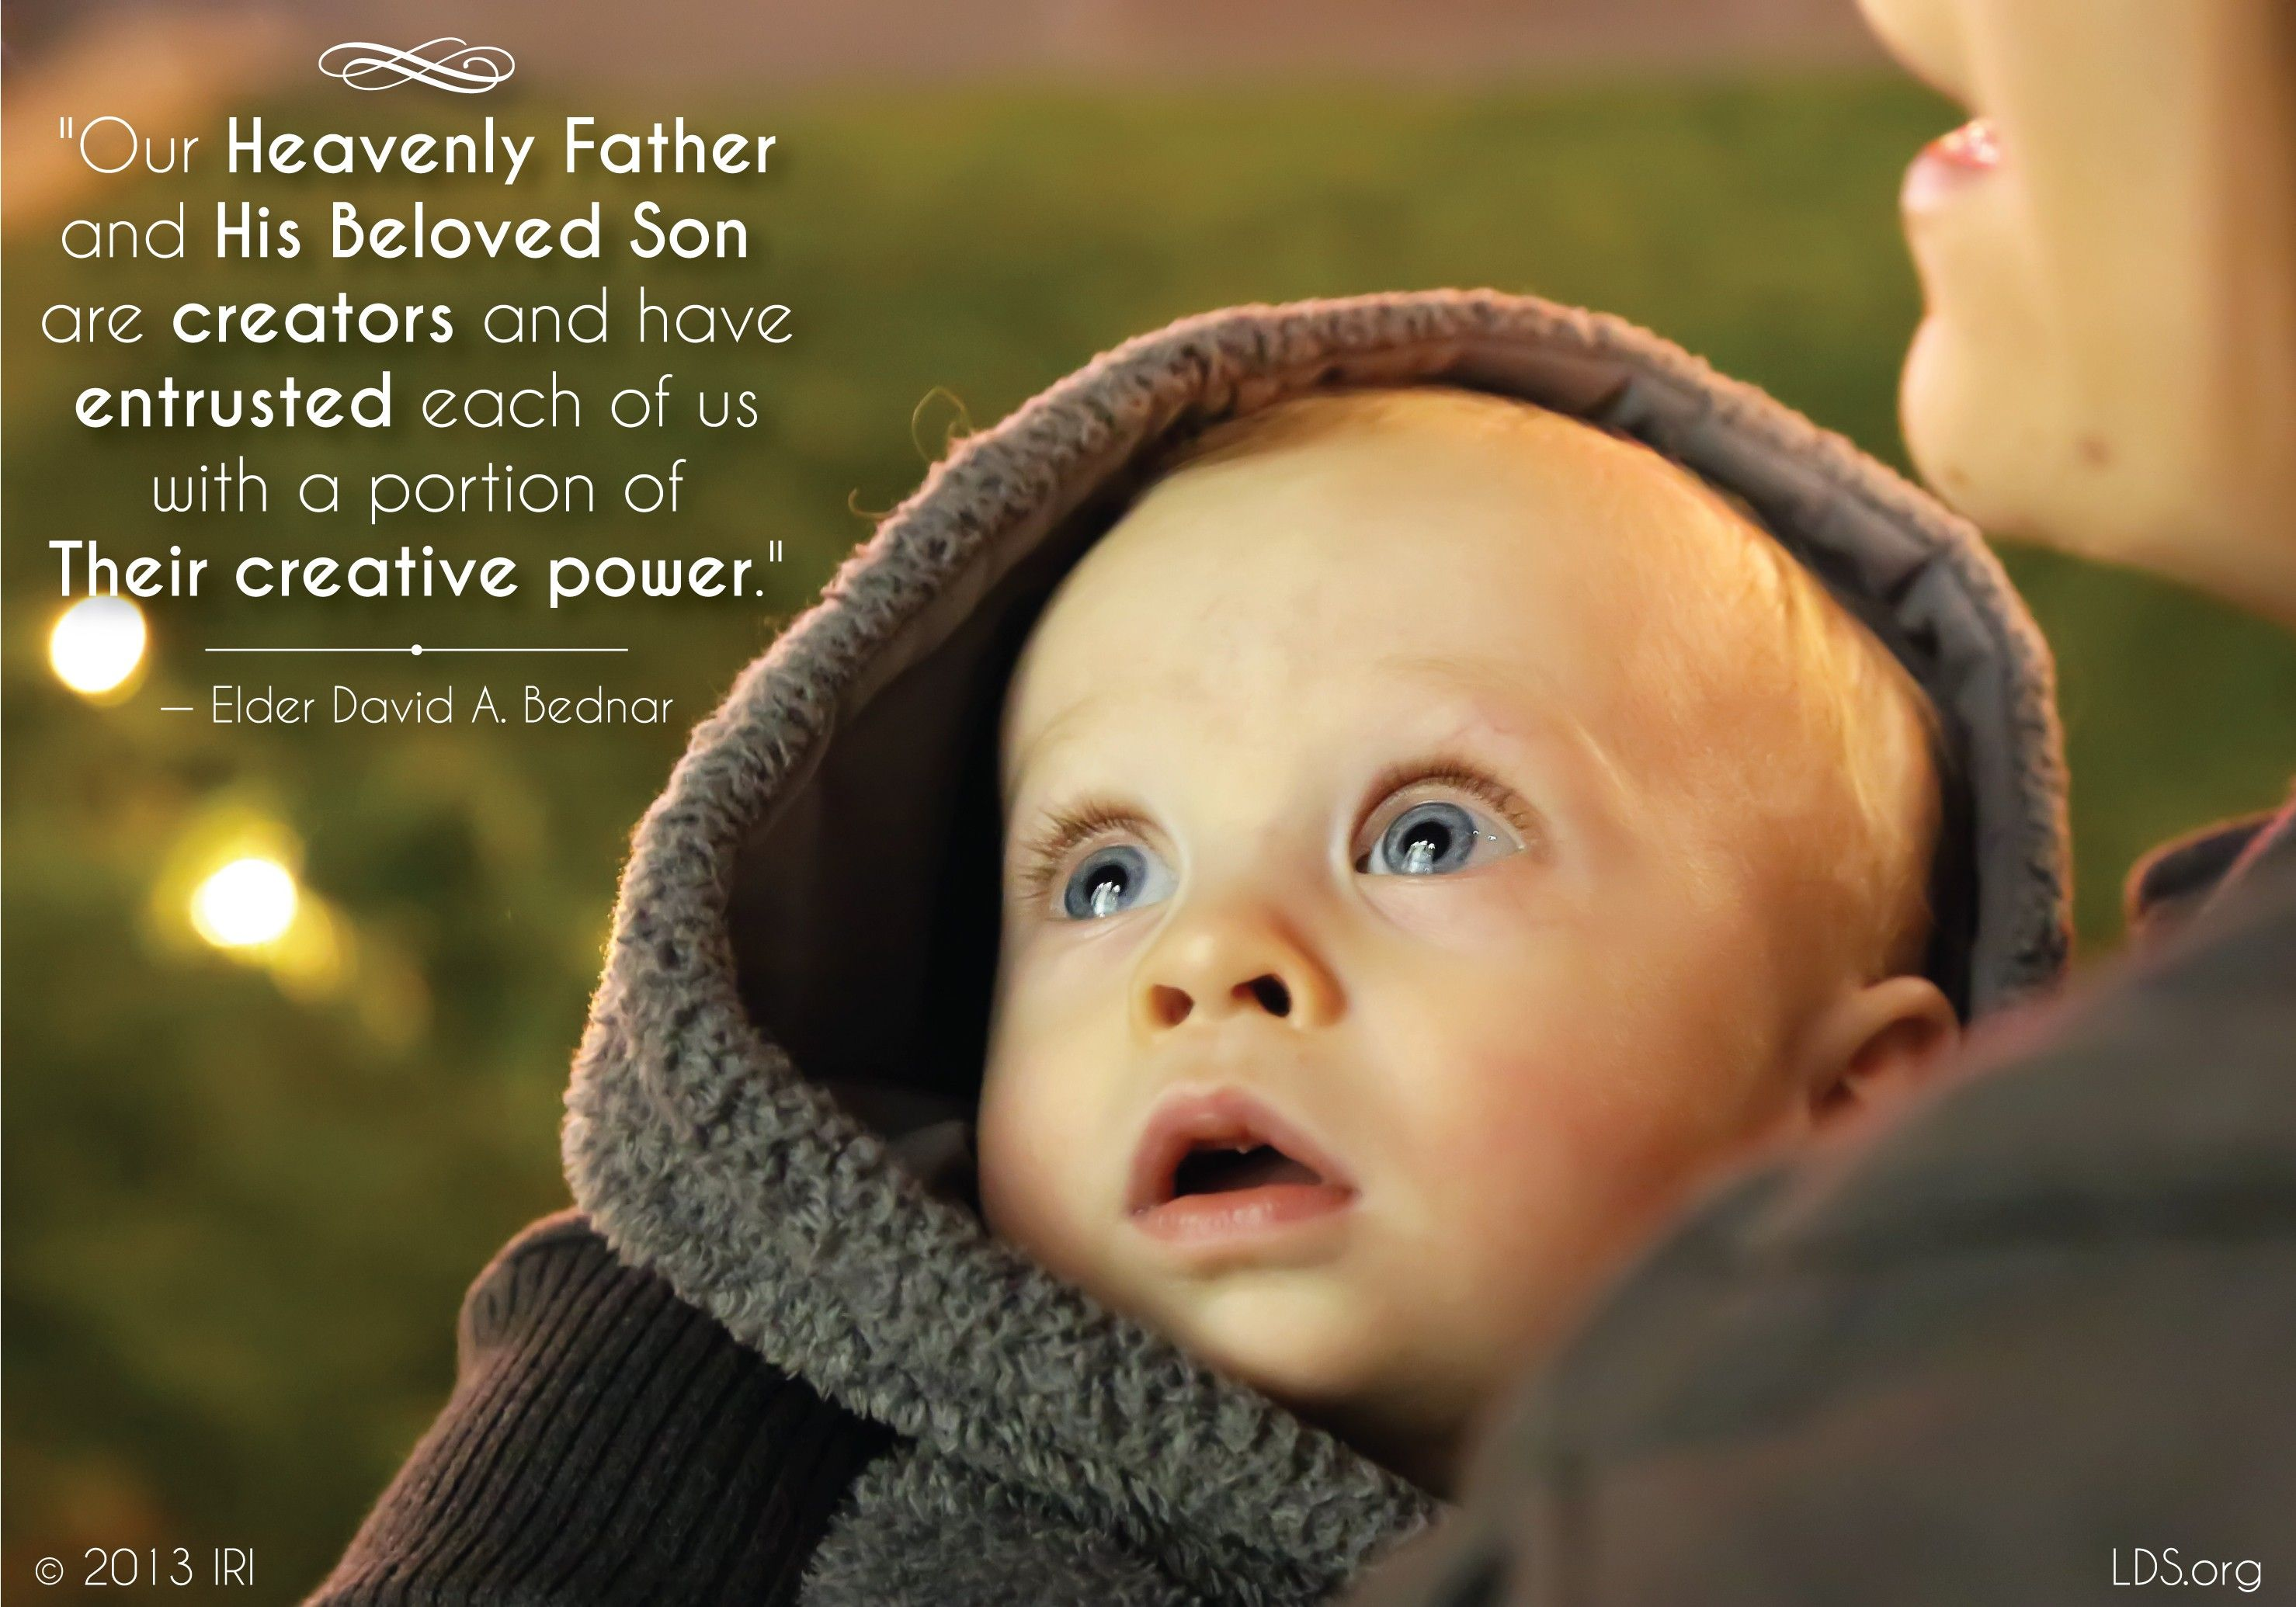 """Our Heavenly Father and His Beloved Son are creators and have entrusted each of us with a portion of Their creative power.""—Elder David A. Bednar, ""We Believe in Being Chaste"""